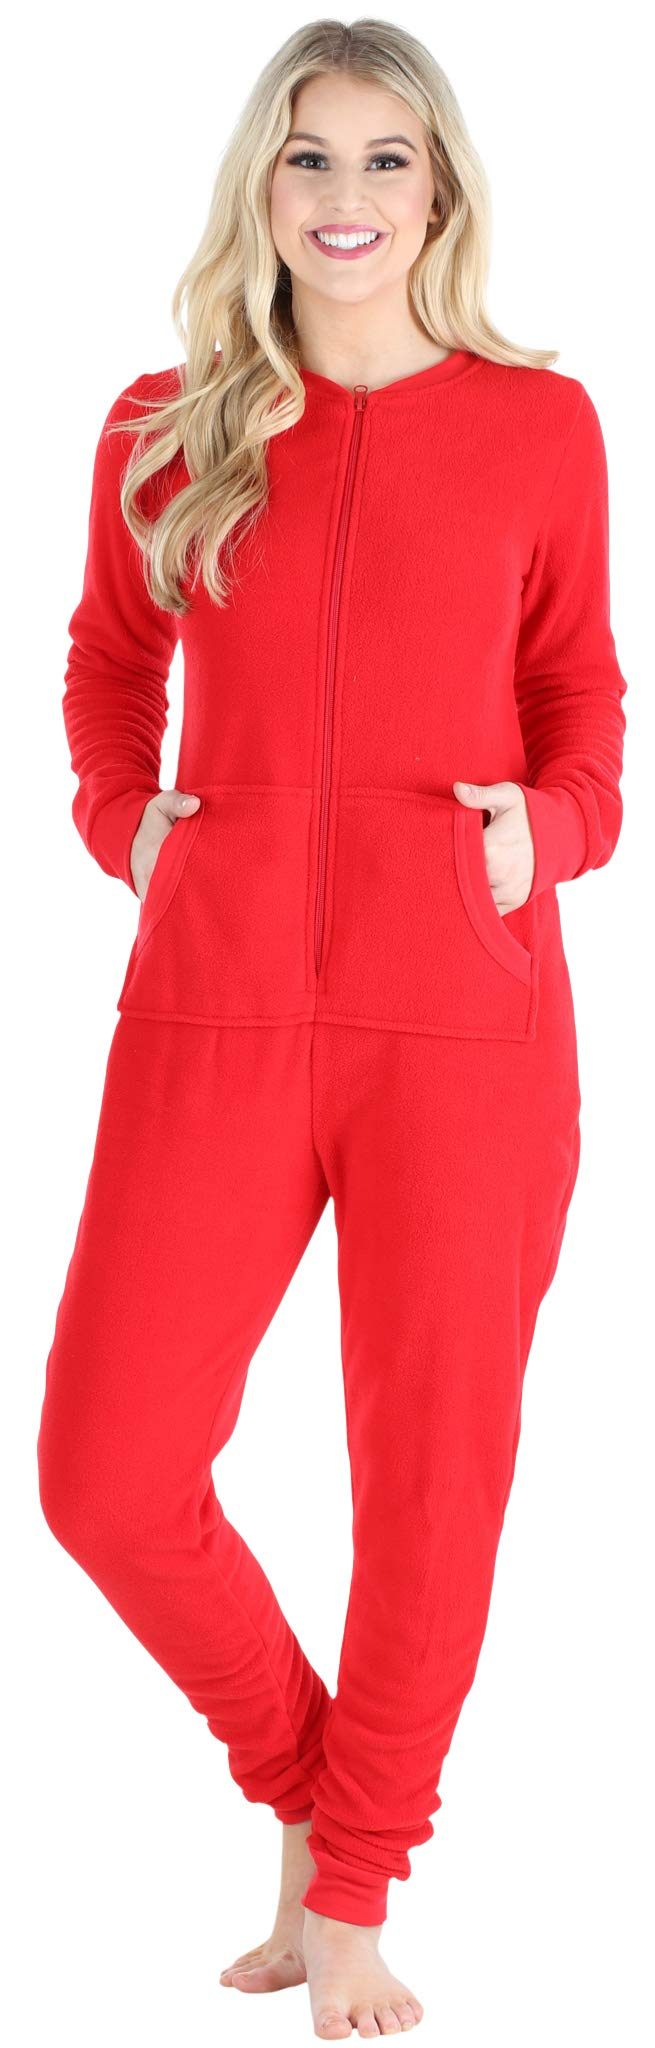 Sleepyheads Women's Fleece Non-Footed Solid Color Onesie Pajamas Jumpsuit (SH1018-4033S-XL) by Sleepyheads